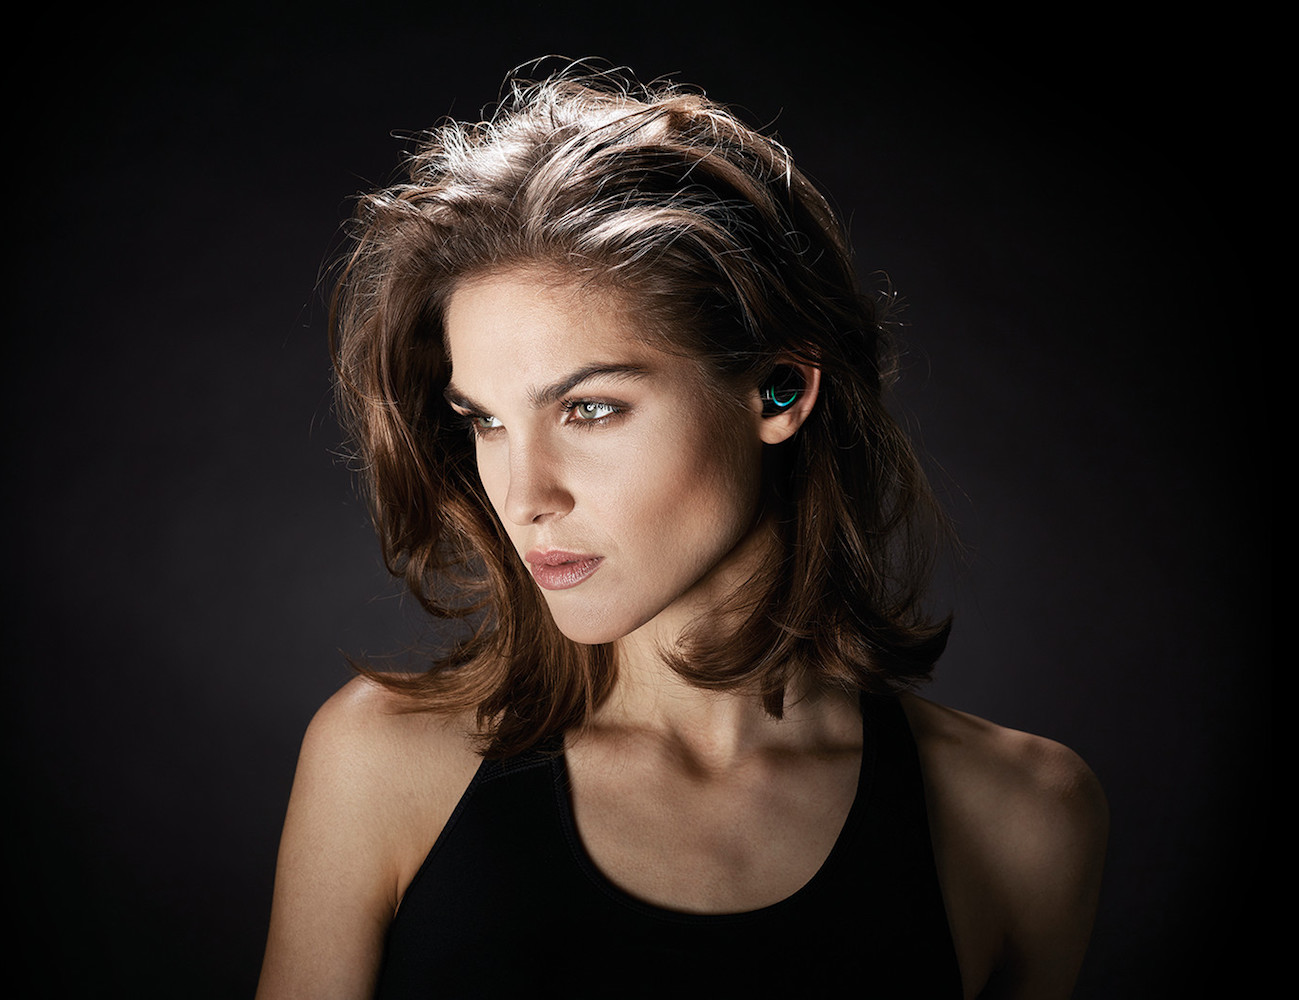 bragi-dash-wireless-smart-earphones-3-features-in-1-product-01-2